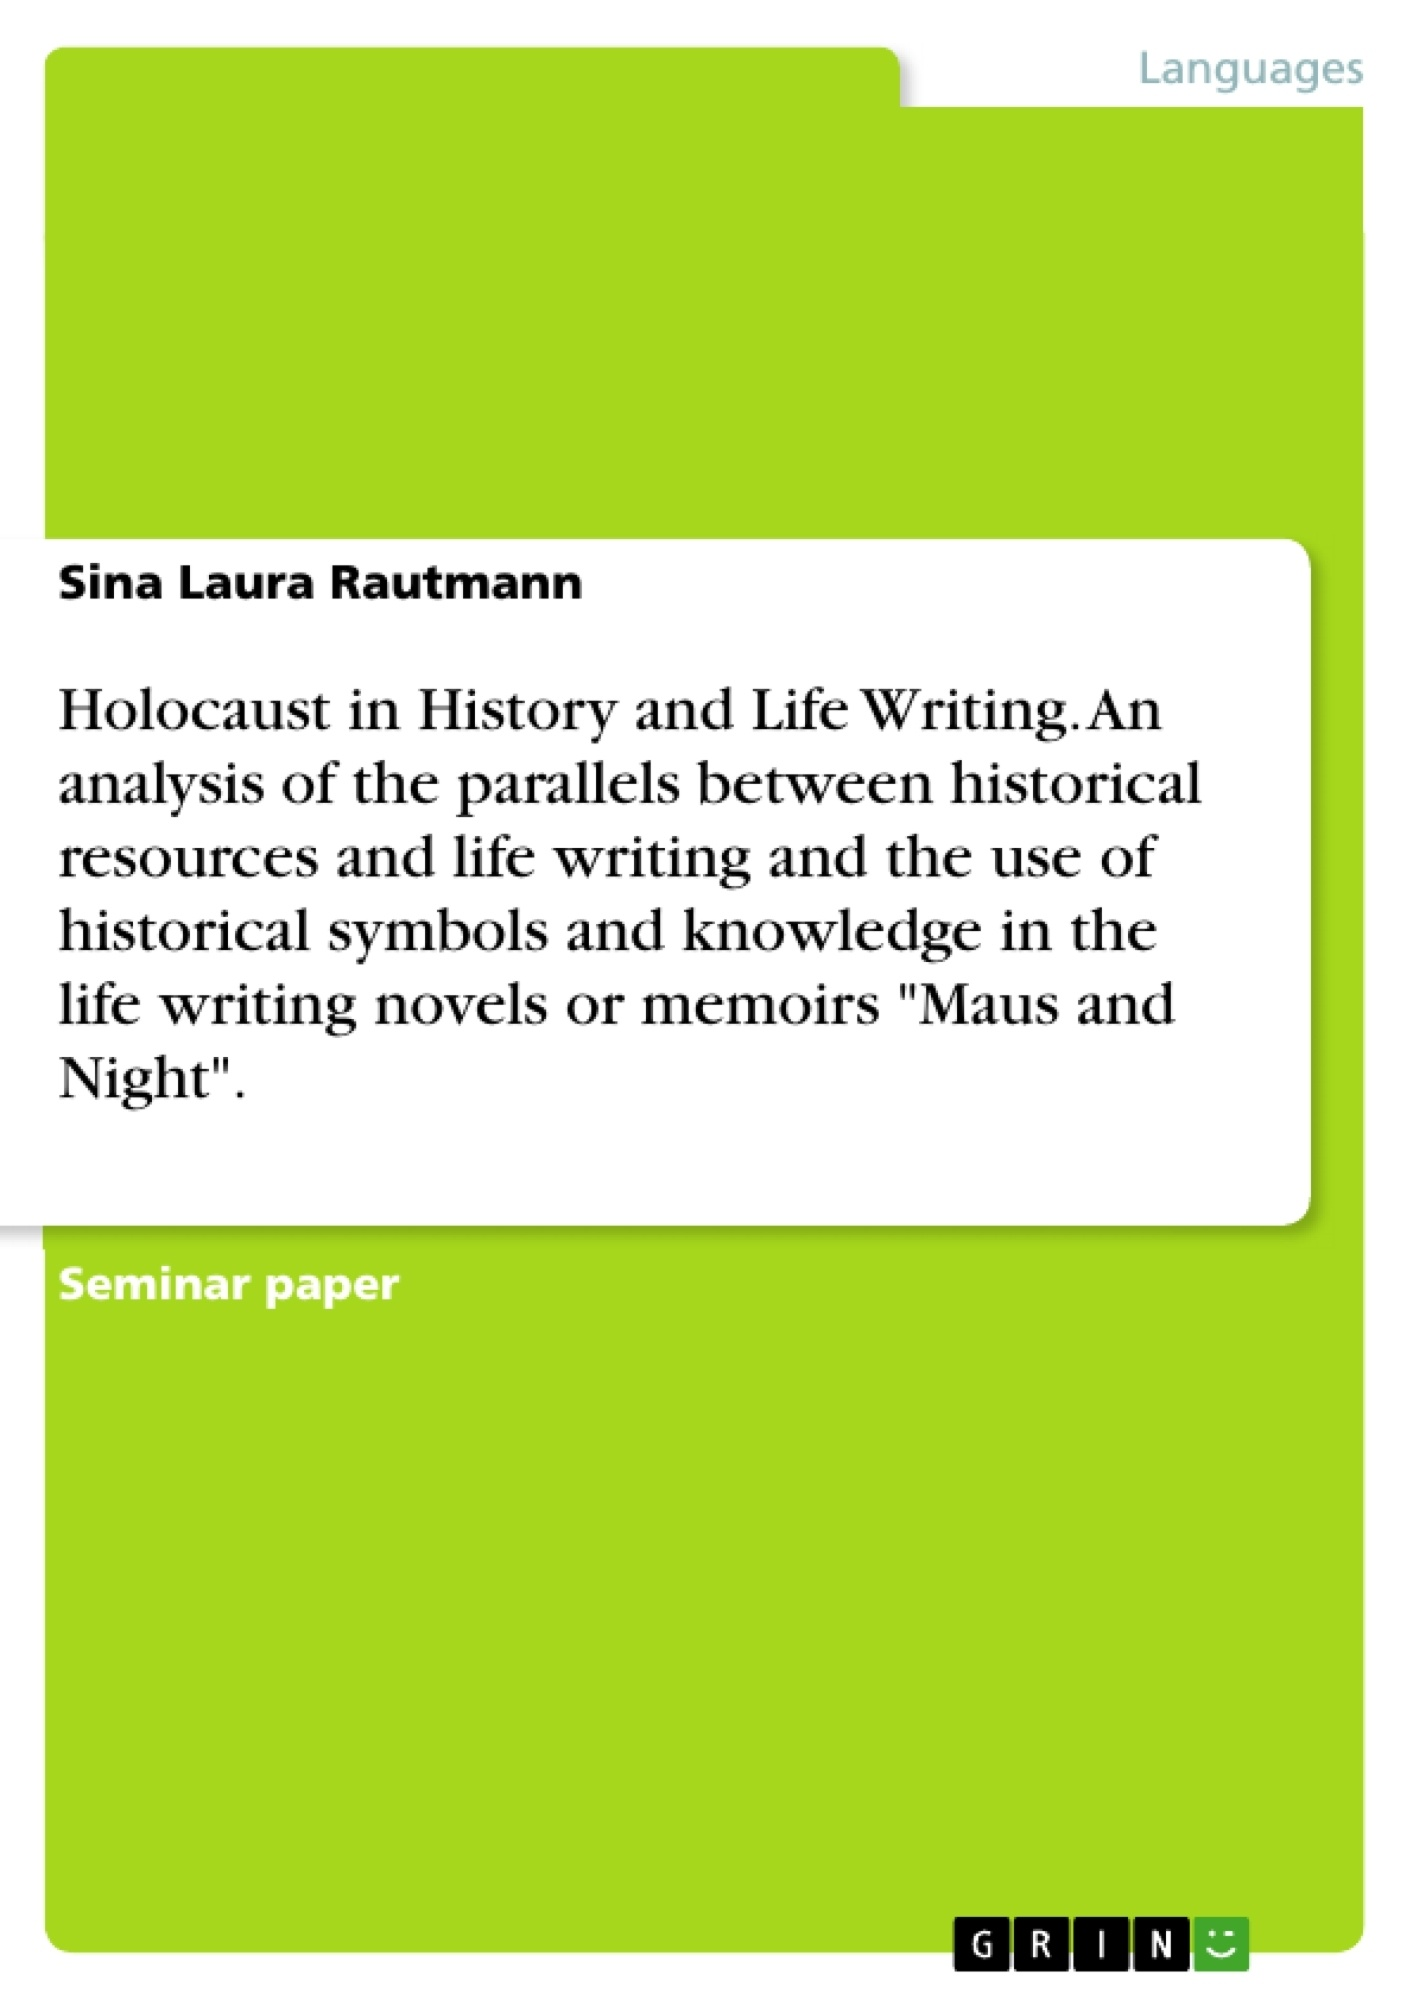 """Title: Holocaust in History and Life Writing. An analysis of the parallels between historical resources and life writing and the use of historical symbols and knowledge in the life writing novels or memoirs """"Maus and Night""""."""